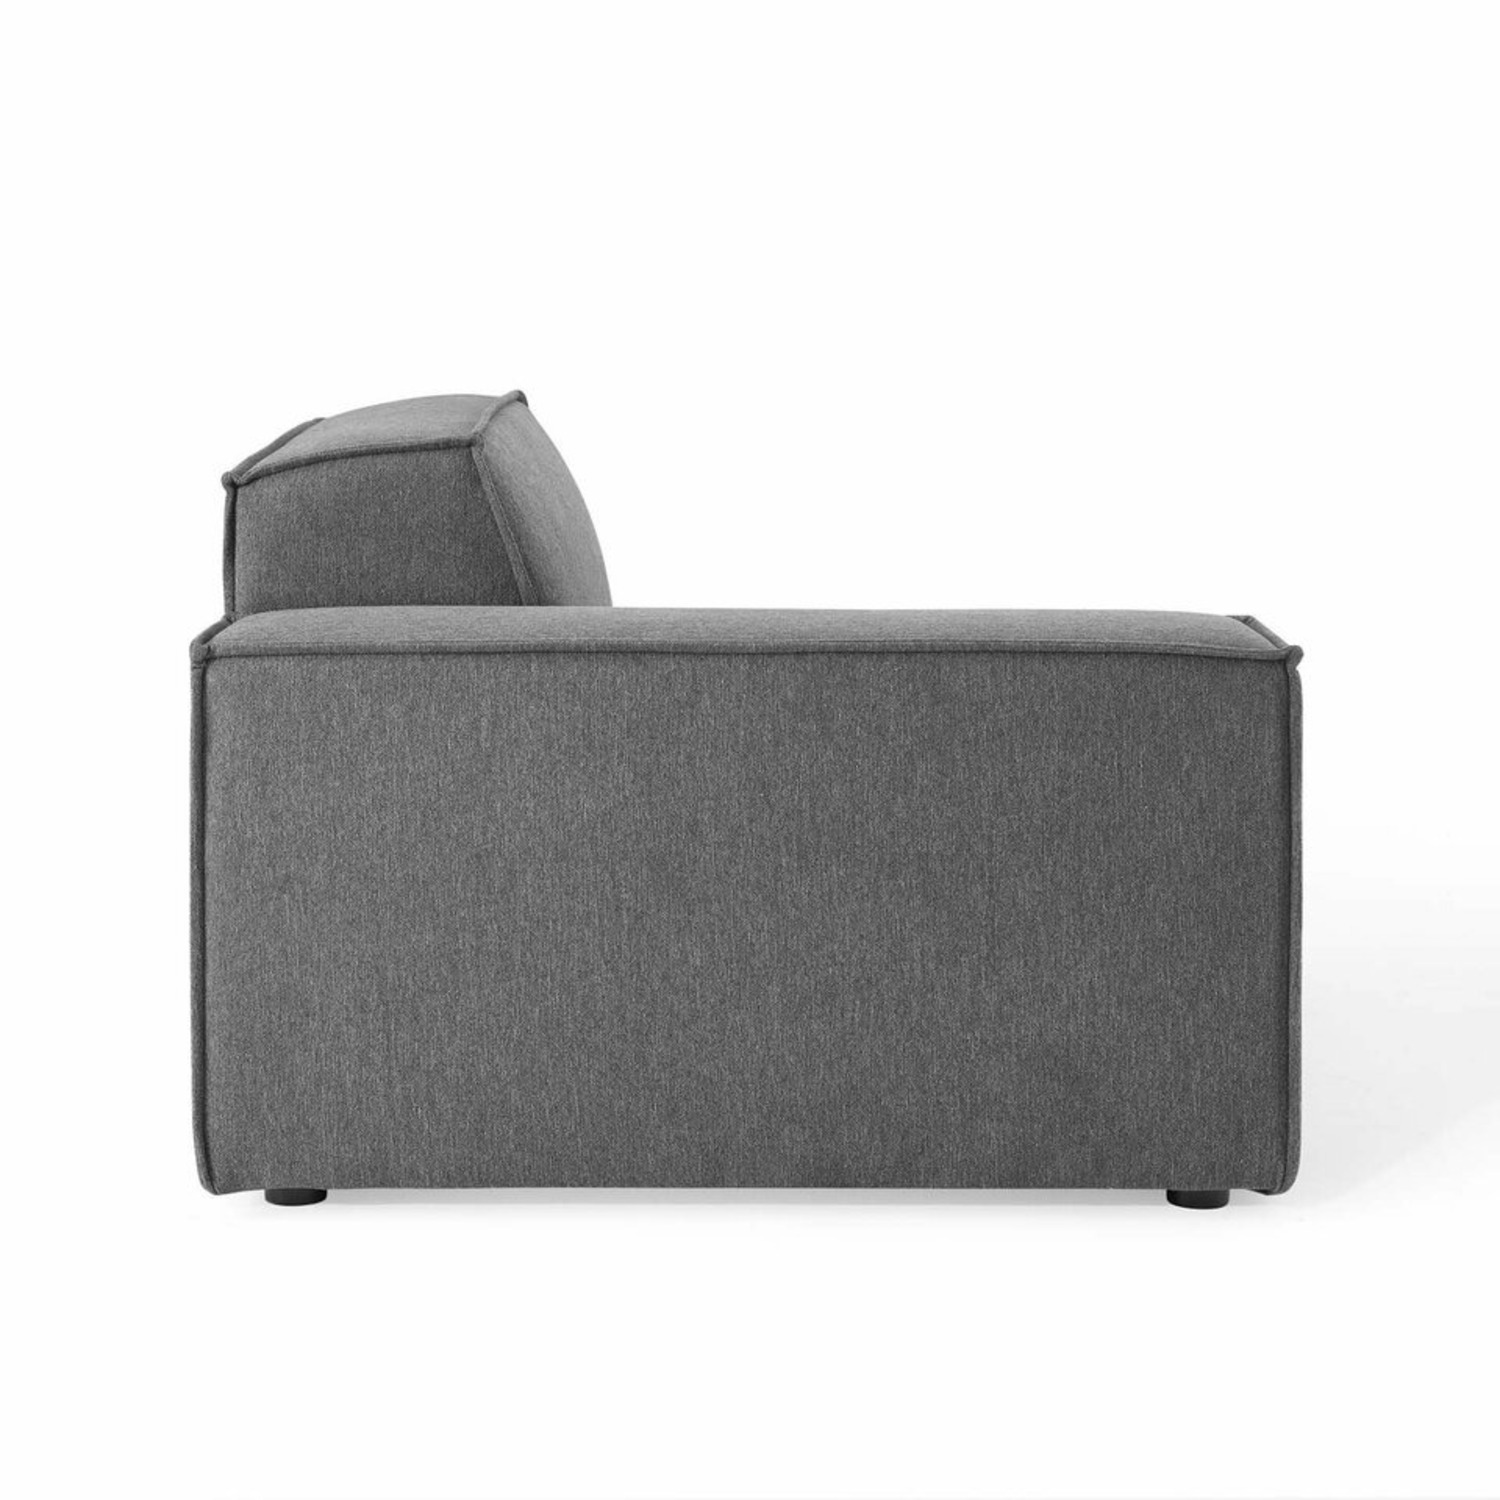 6-Piece Sectional Sofa In Charcoal Upholstery - image-5